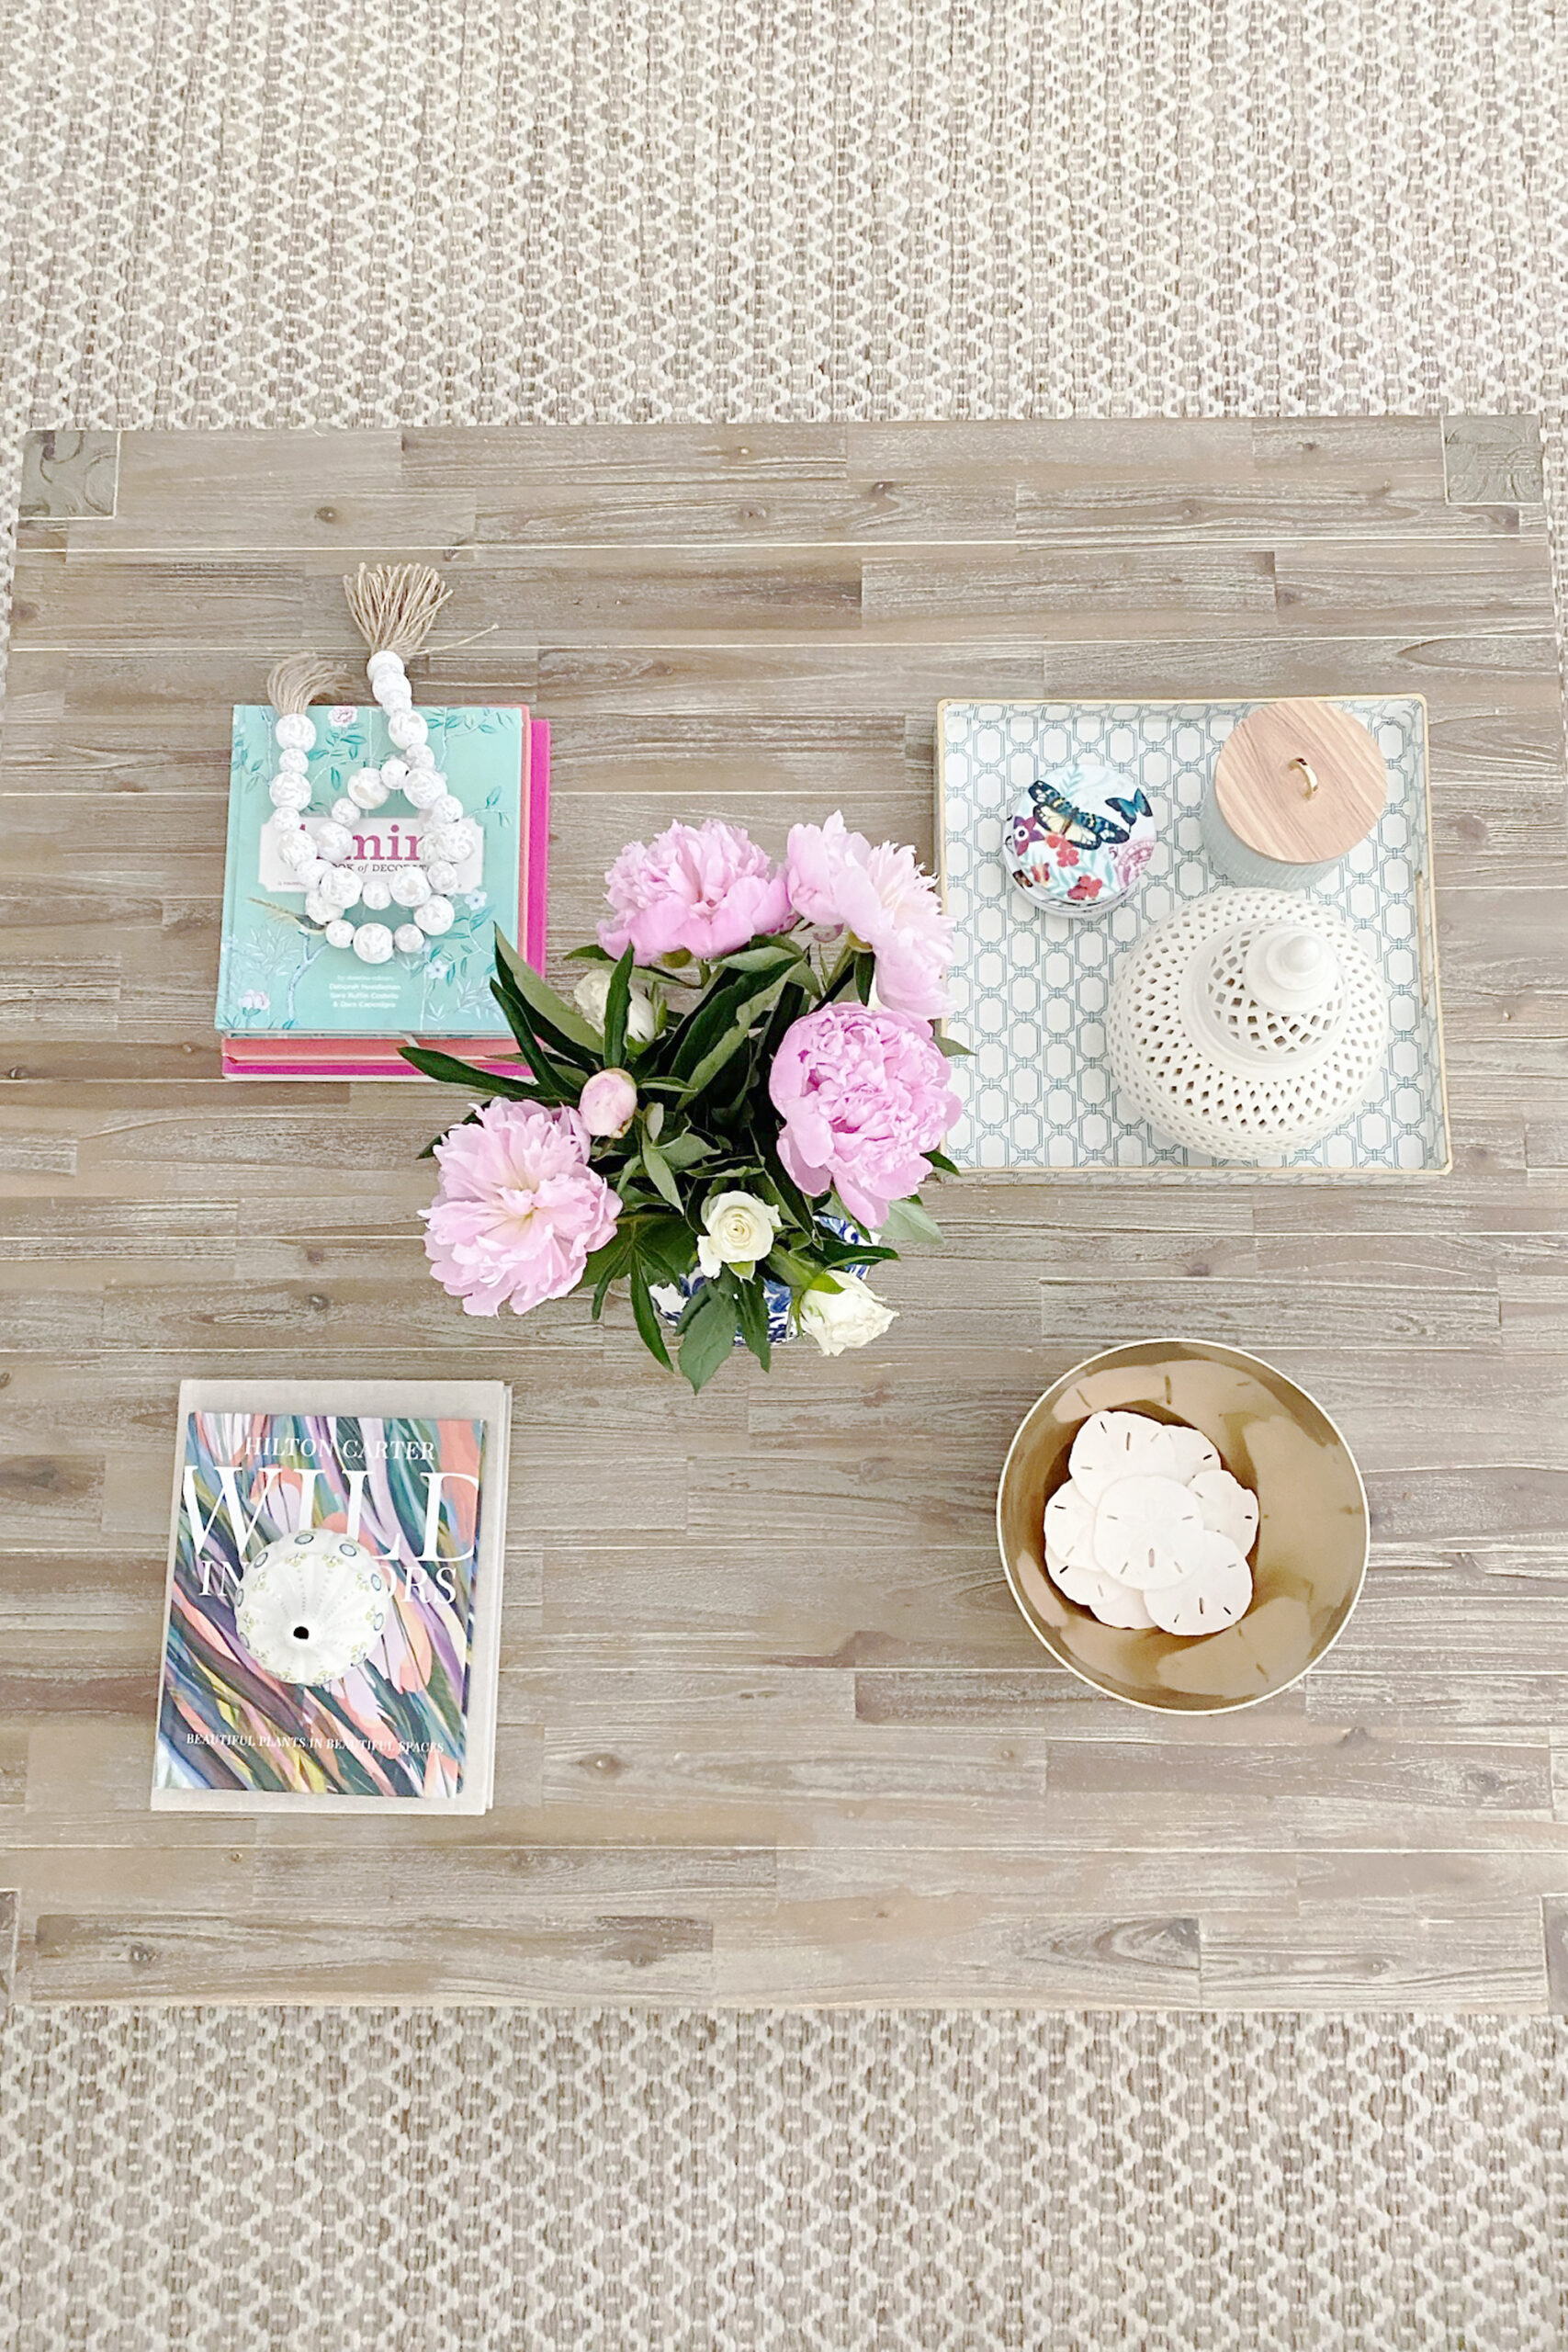 A fun and simple way for coffee table styling and the items you need to have to make it look polished and well put together. || Darling Darleen Top CT Lifestyle Blogger #coffeetablestyling #coffeetable